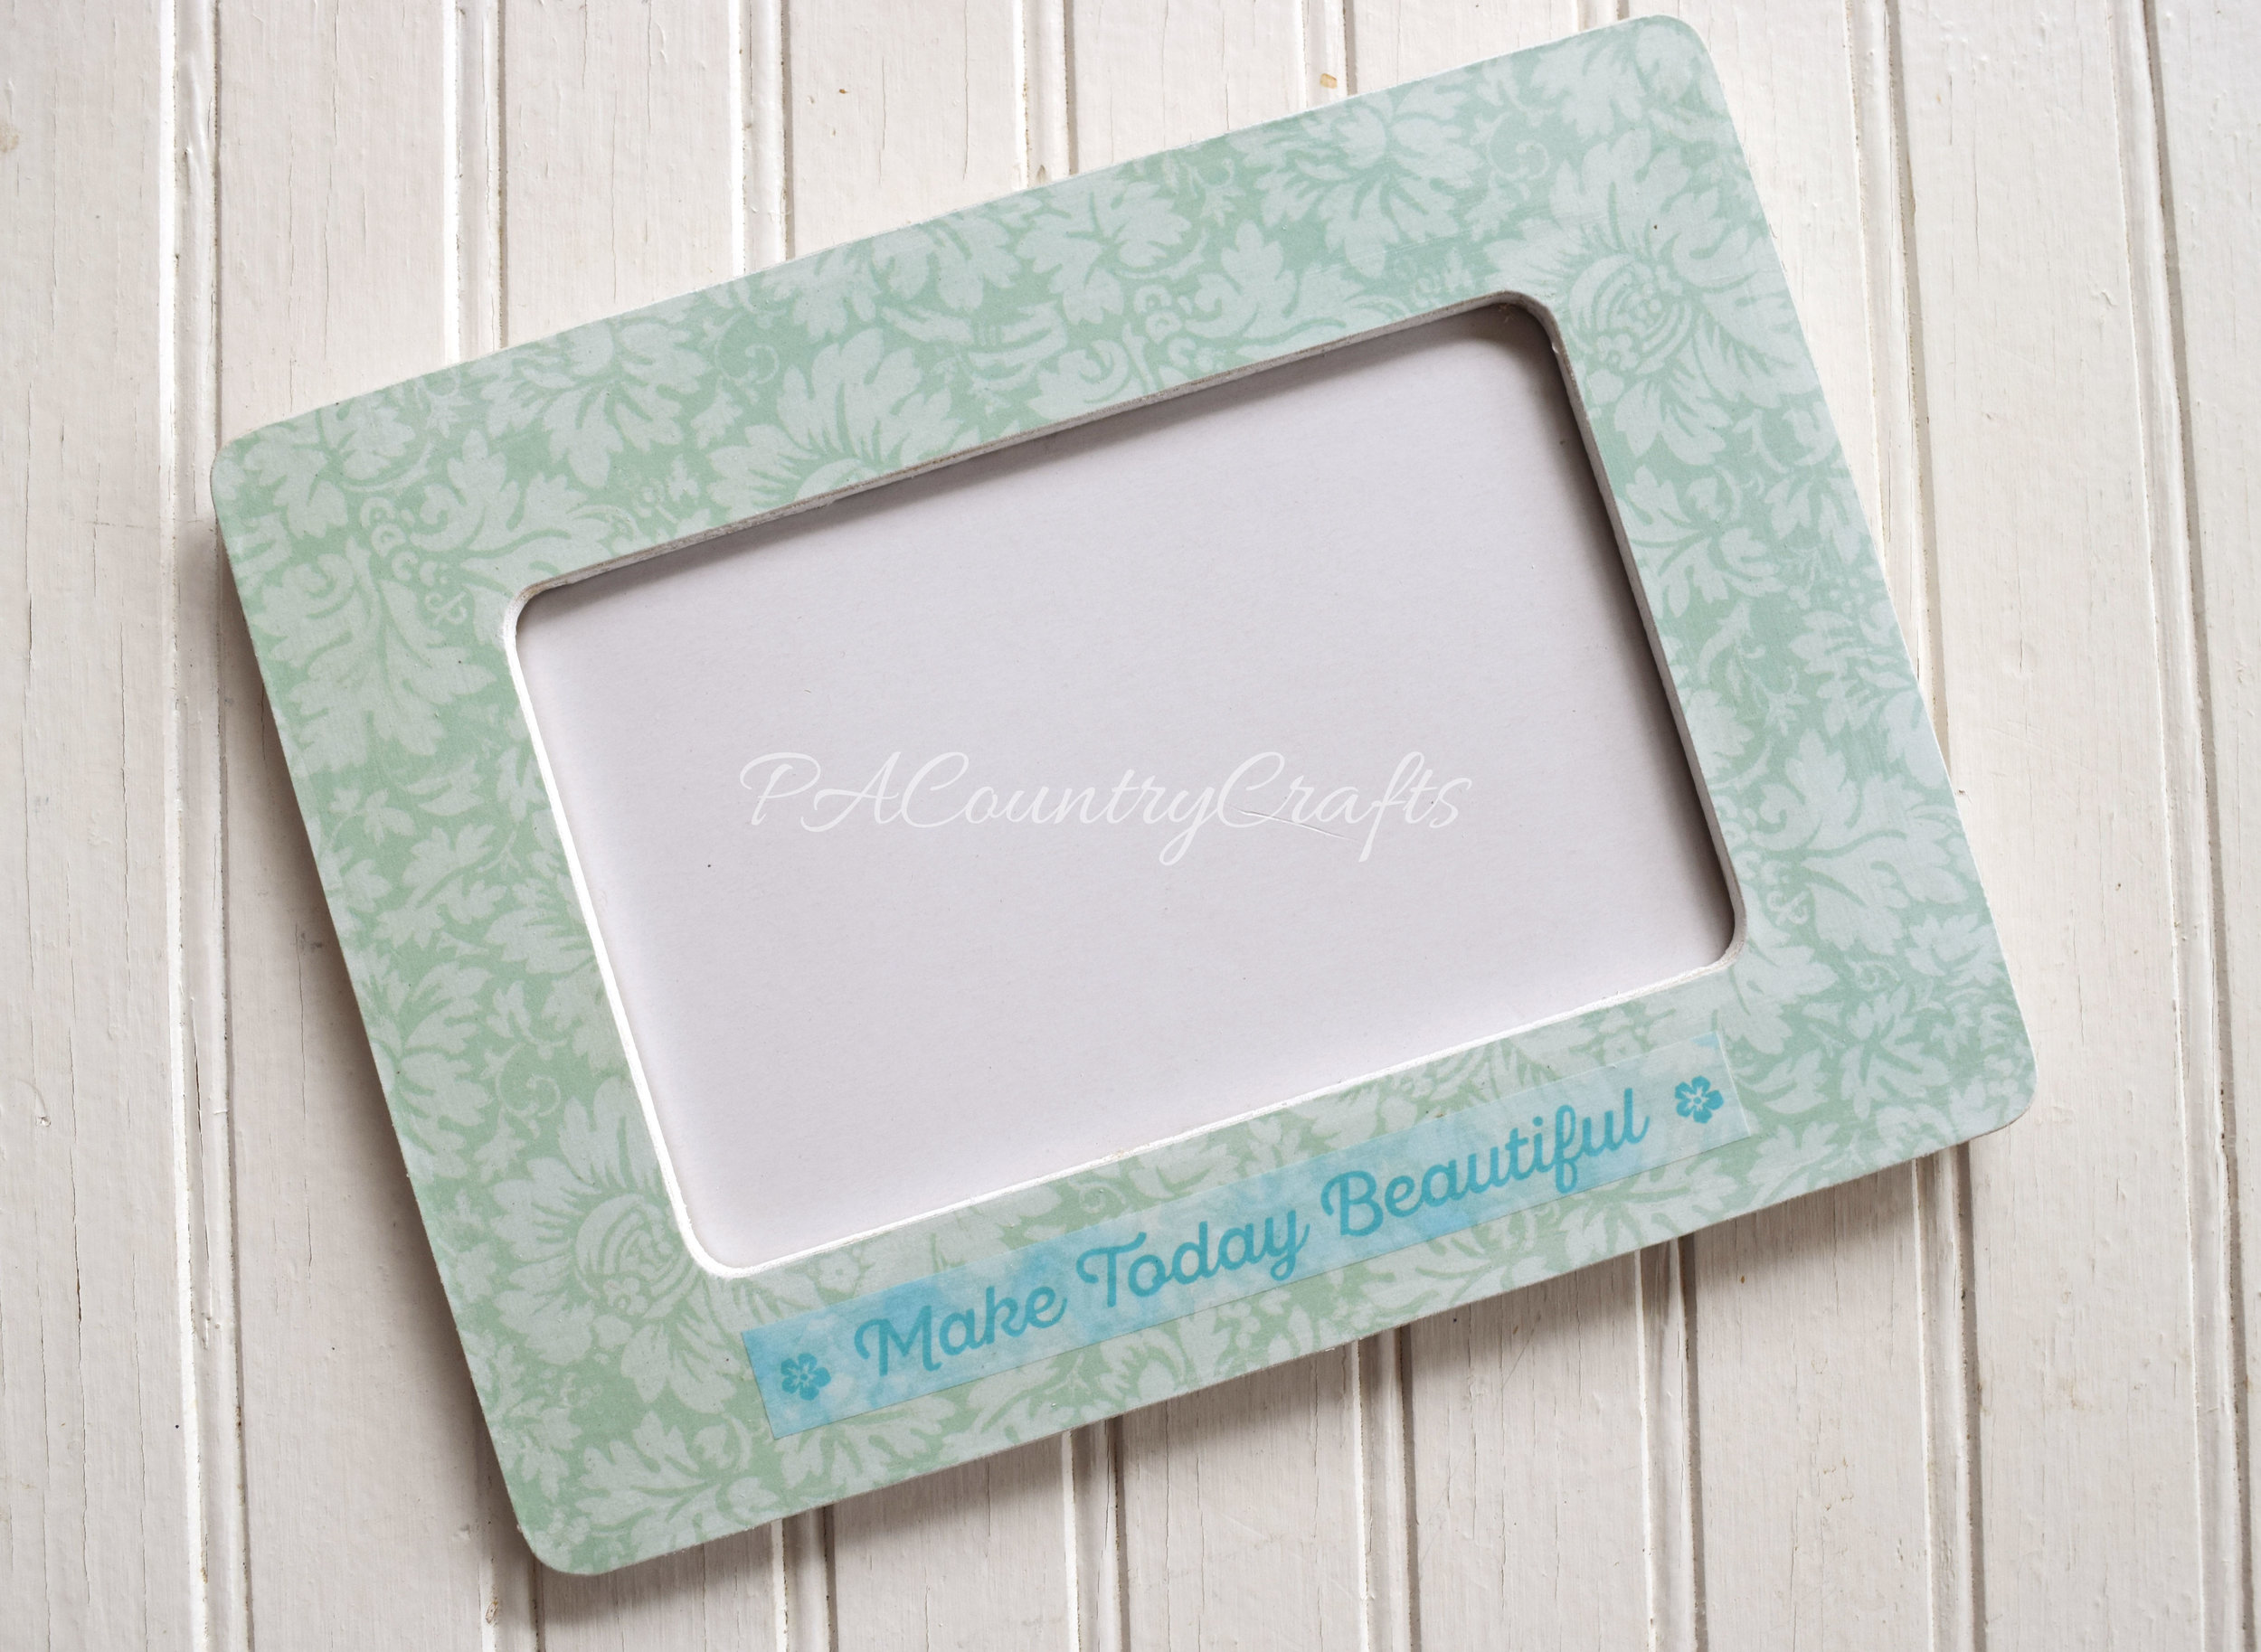 Mod podge, scrapbook paper, and washi tape make this cute frame!